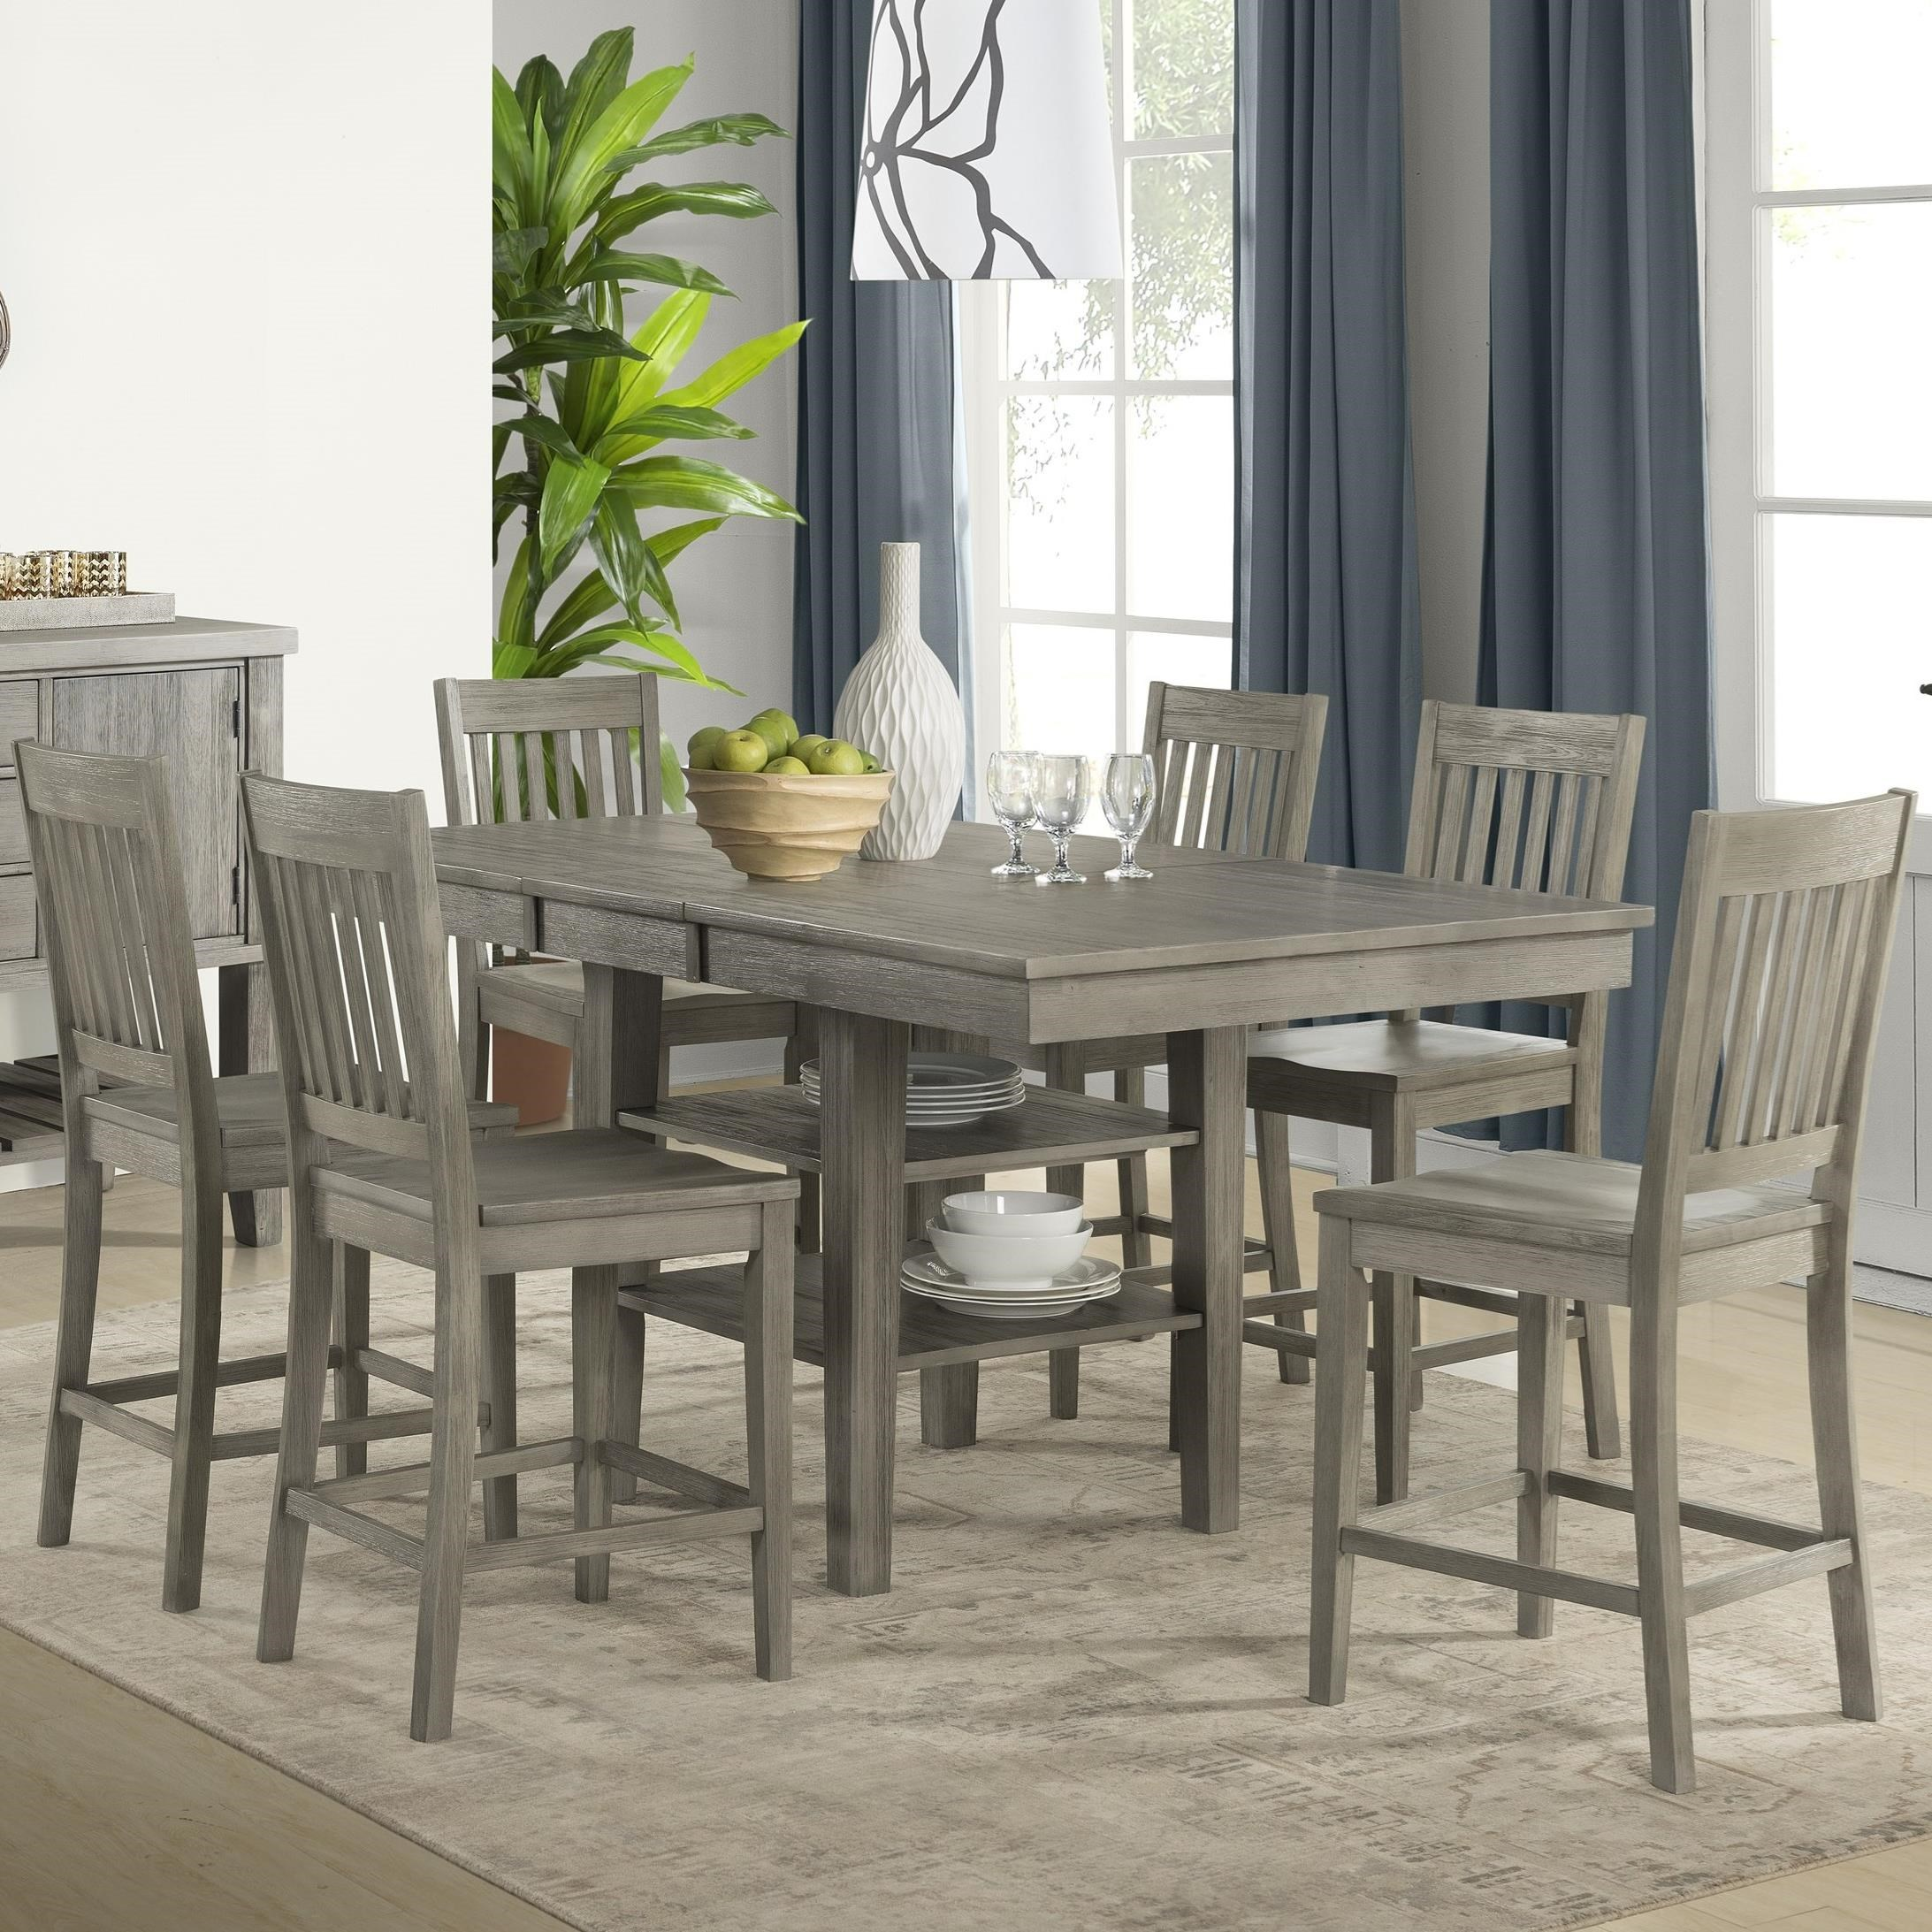 Huron Transitional Pub Table and Chair Set by AAmerica at Stuckey Furniture